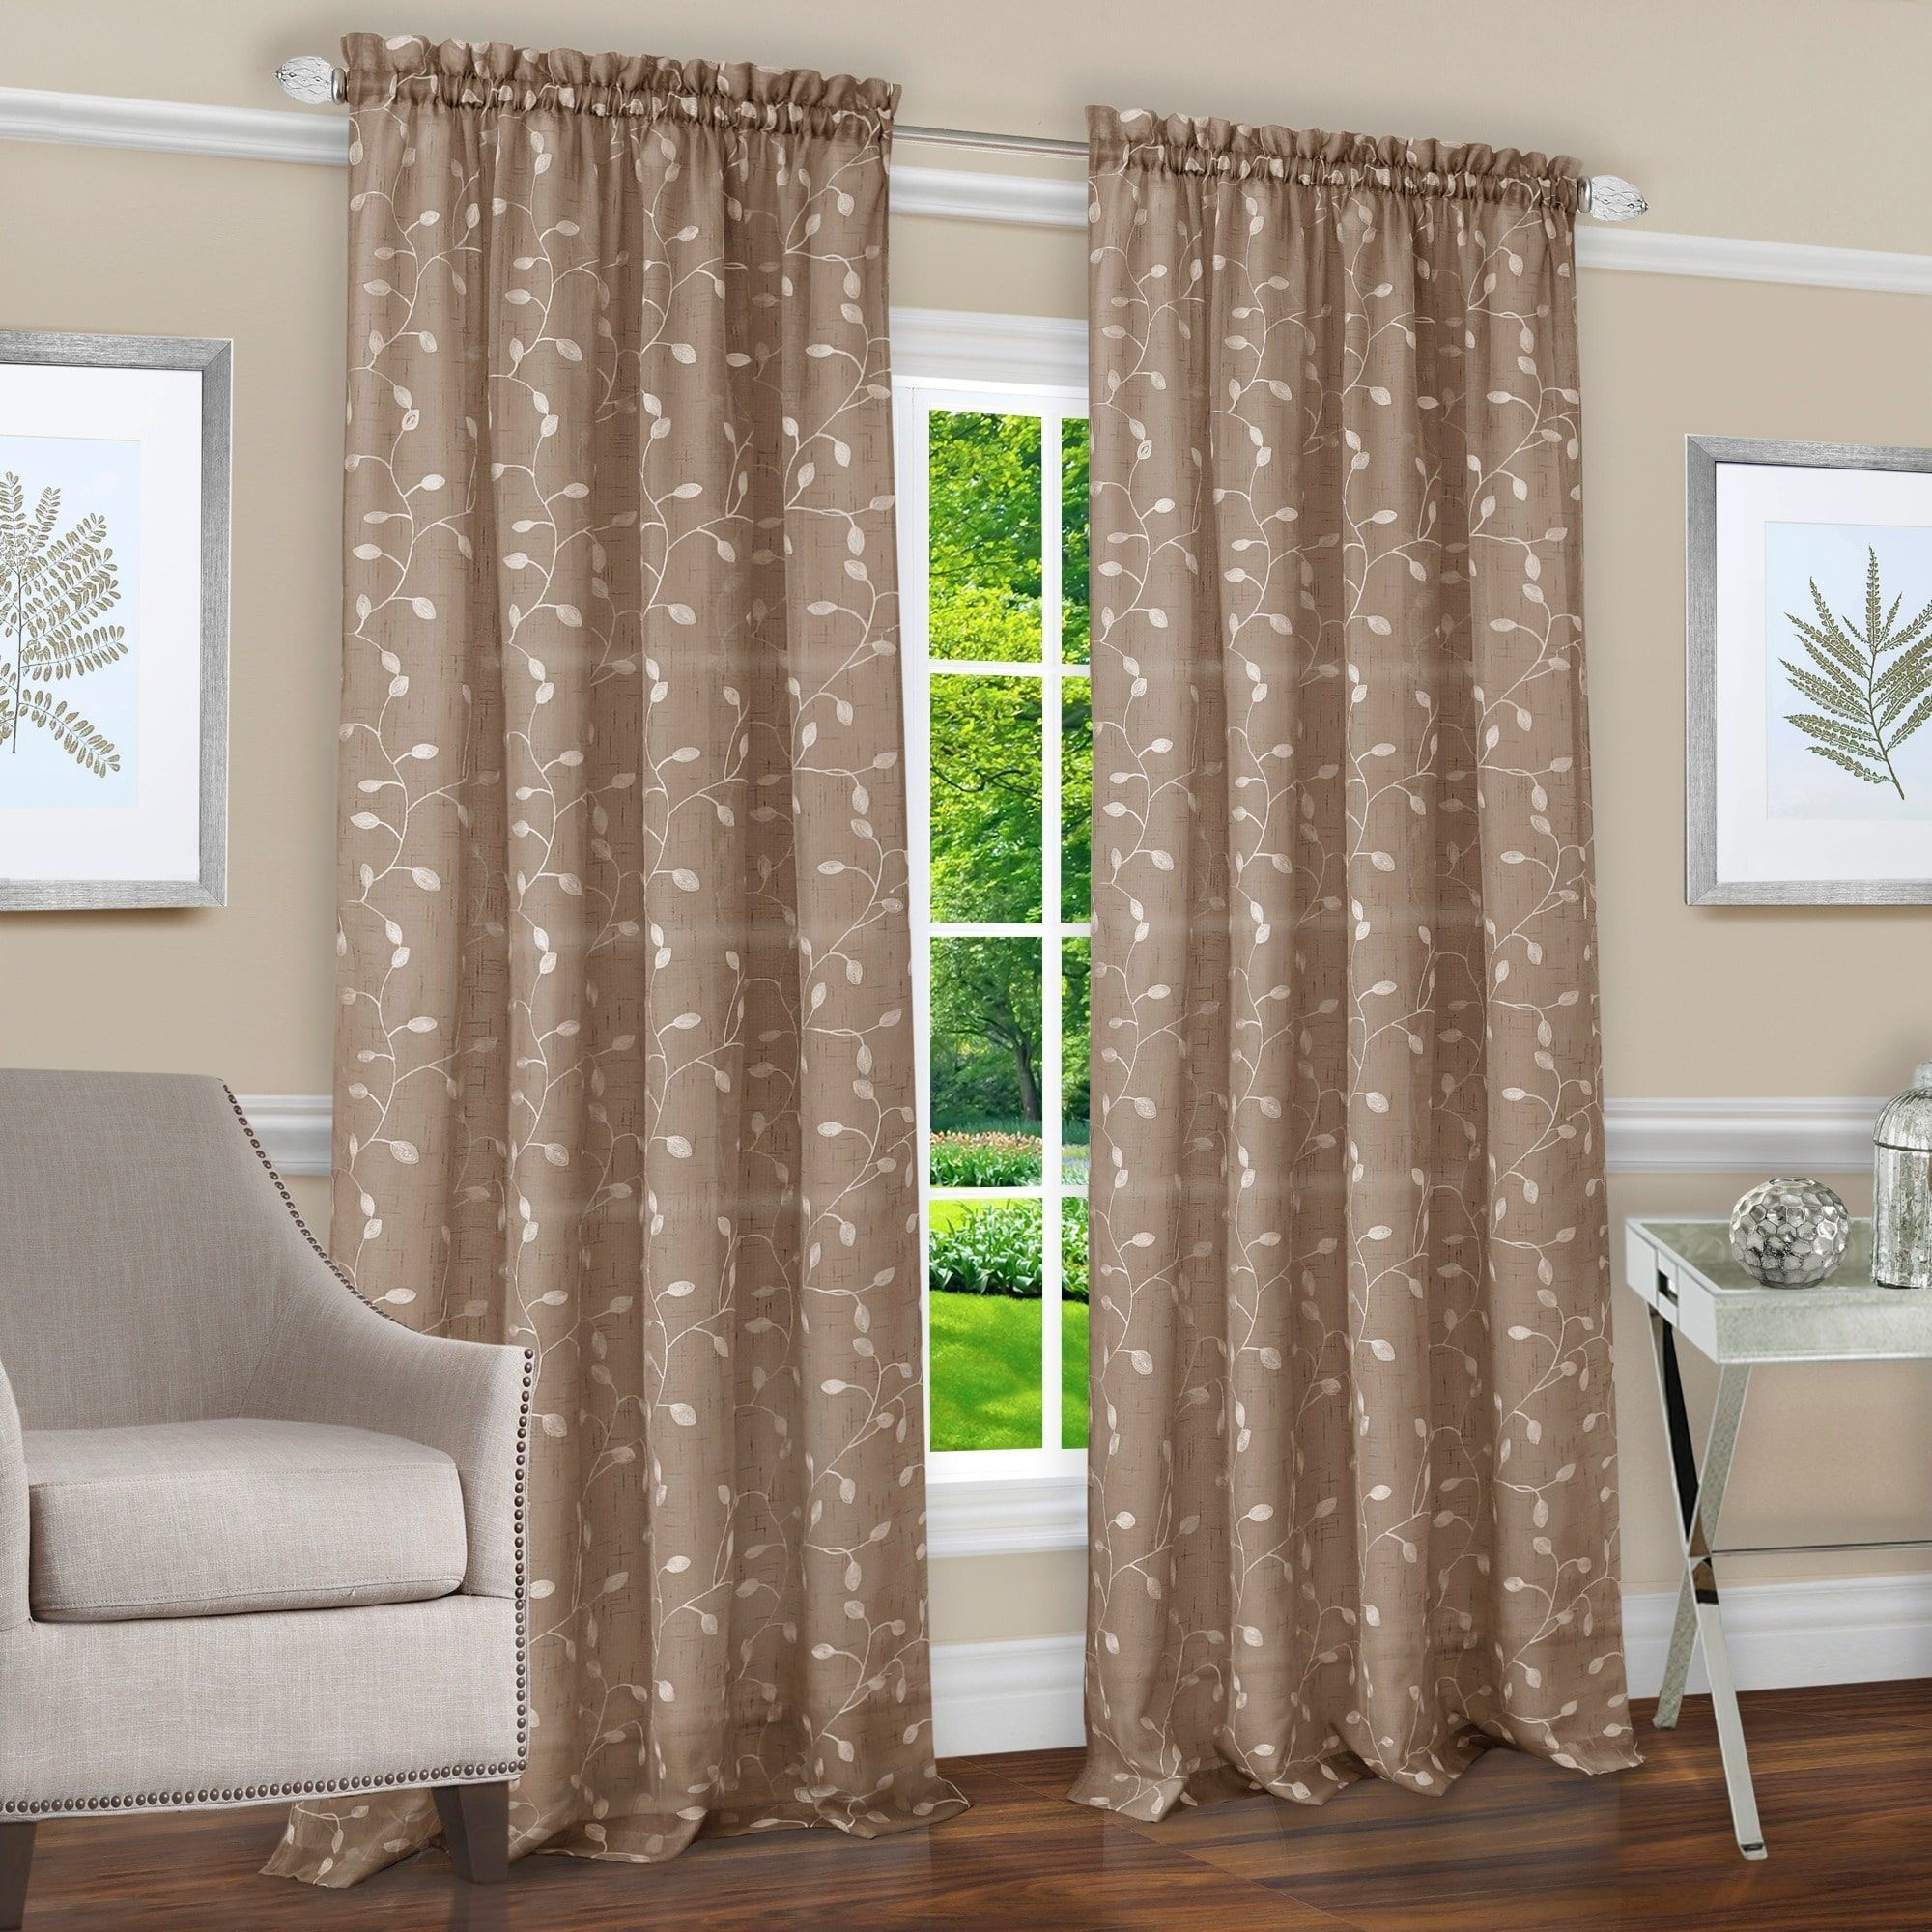 Polyester Curtains Are Mostly Made From Fabrics And Polyester Materials Some Advantages Of Using Polyester Curtains Can B Polyester Window Curtains Curta